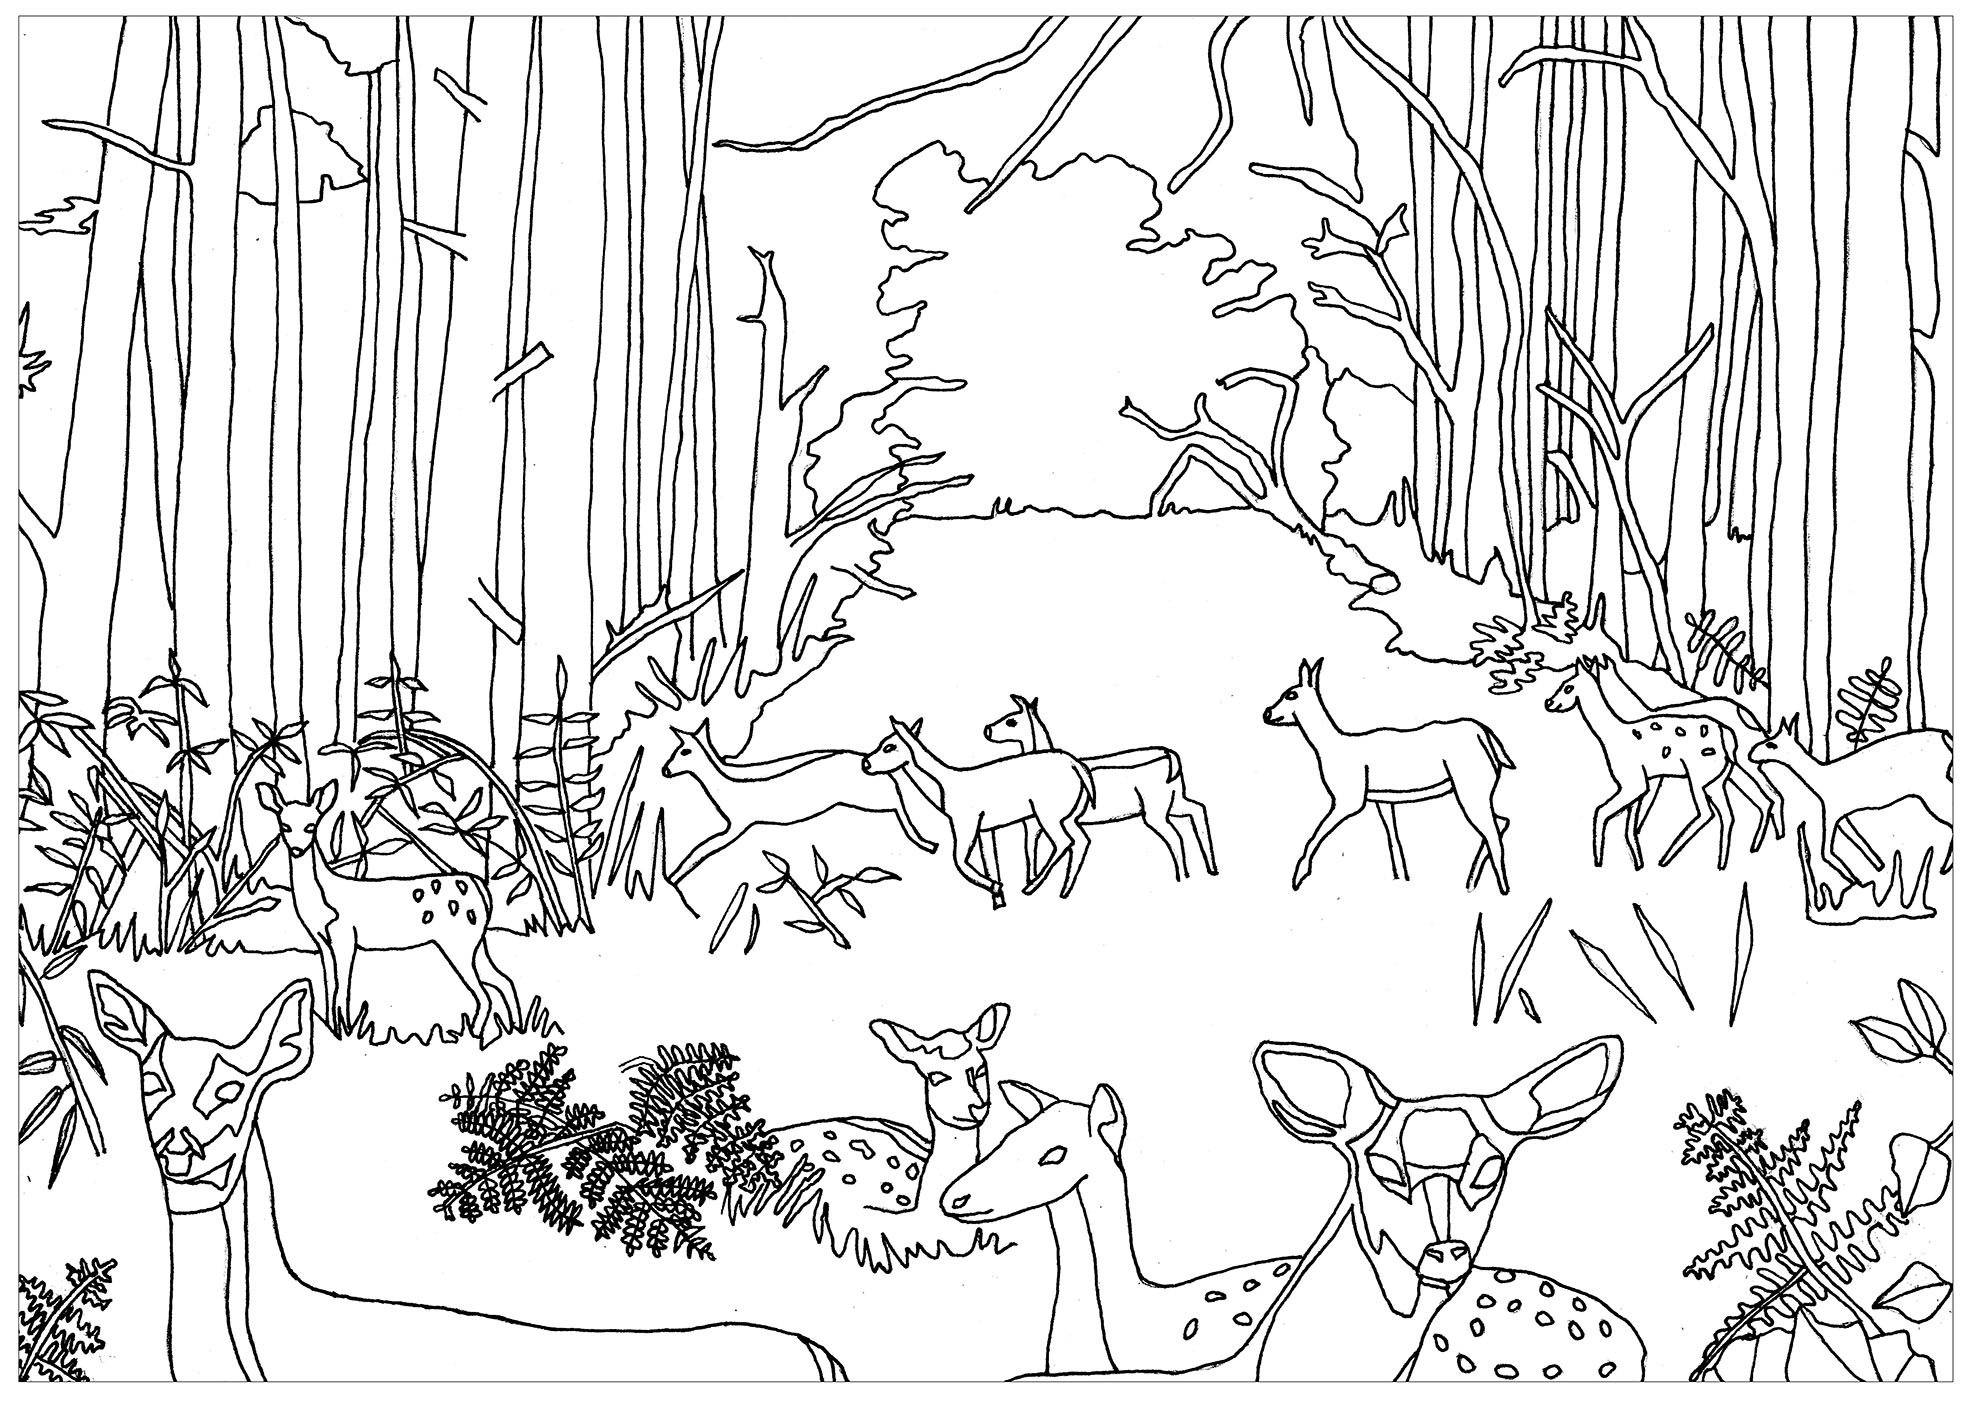 forest coloring page forest coloring pages download and print forest coloring forest page coloring